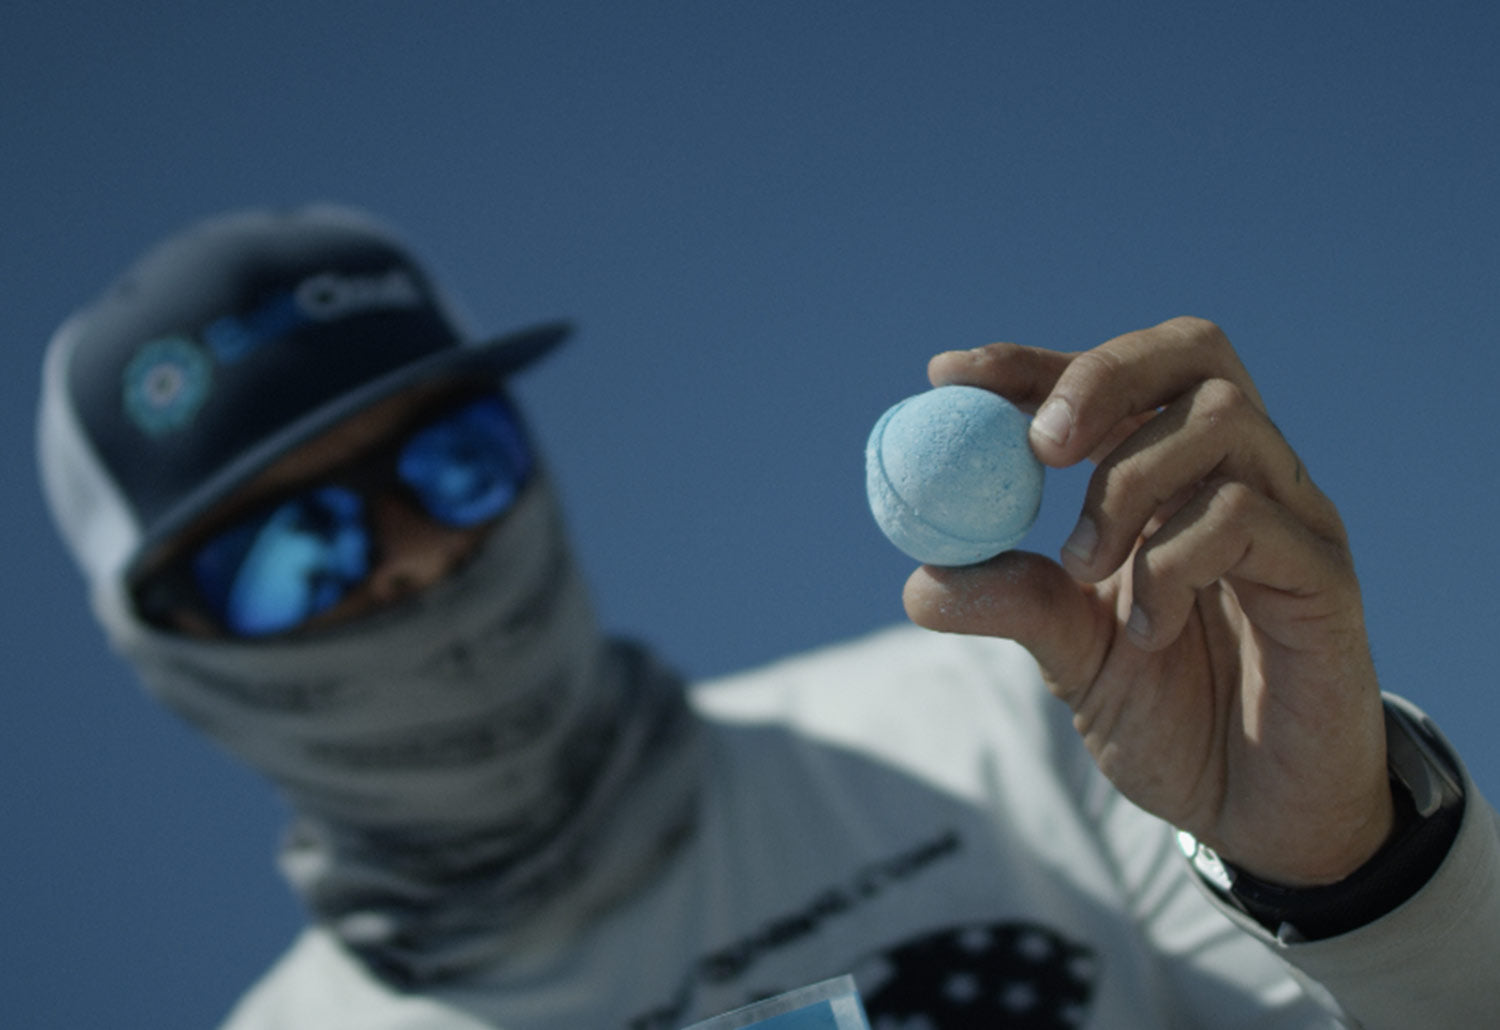 Angler holds a BaitCloud ball getting ready to throw it into the water.